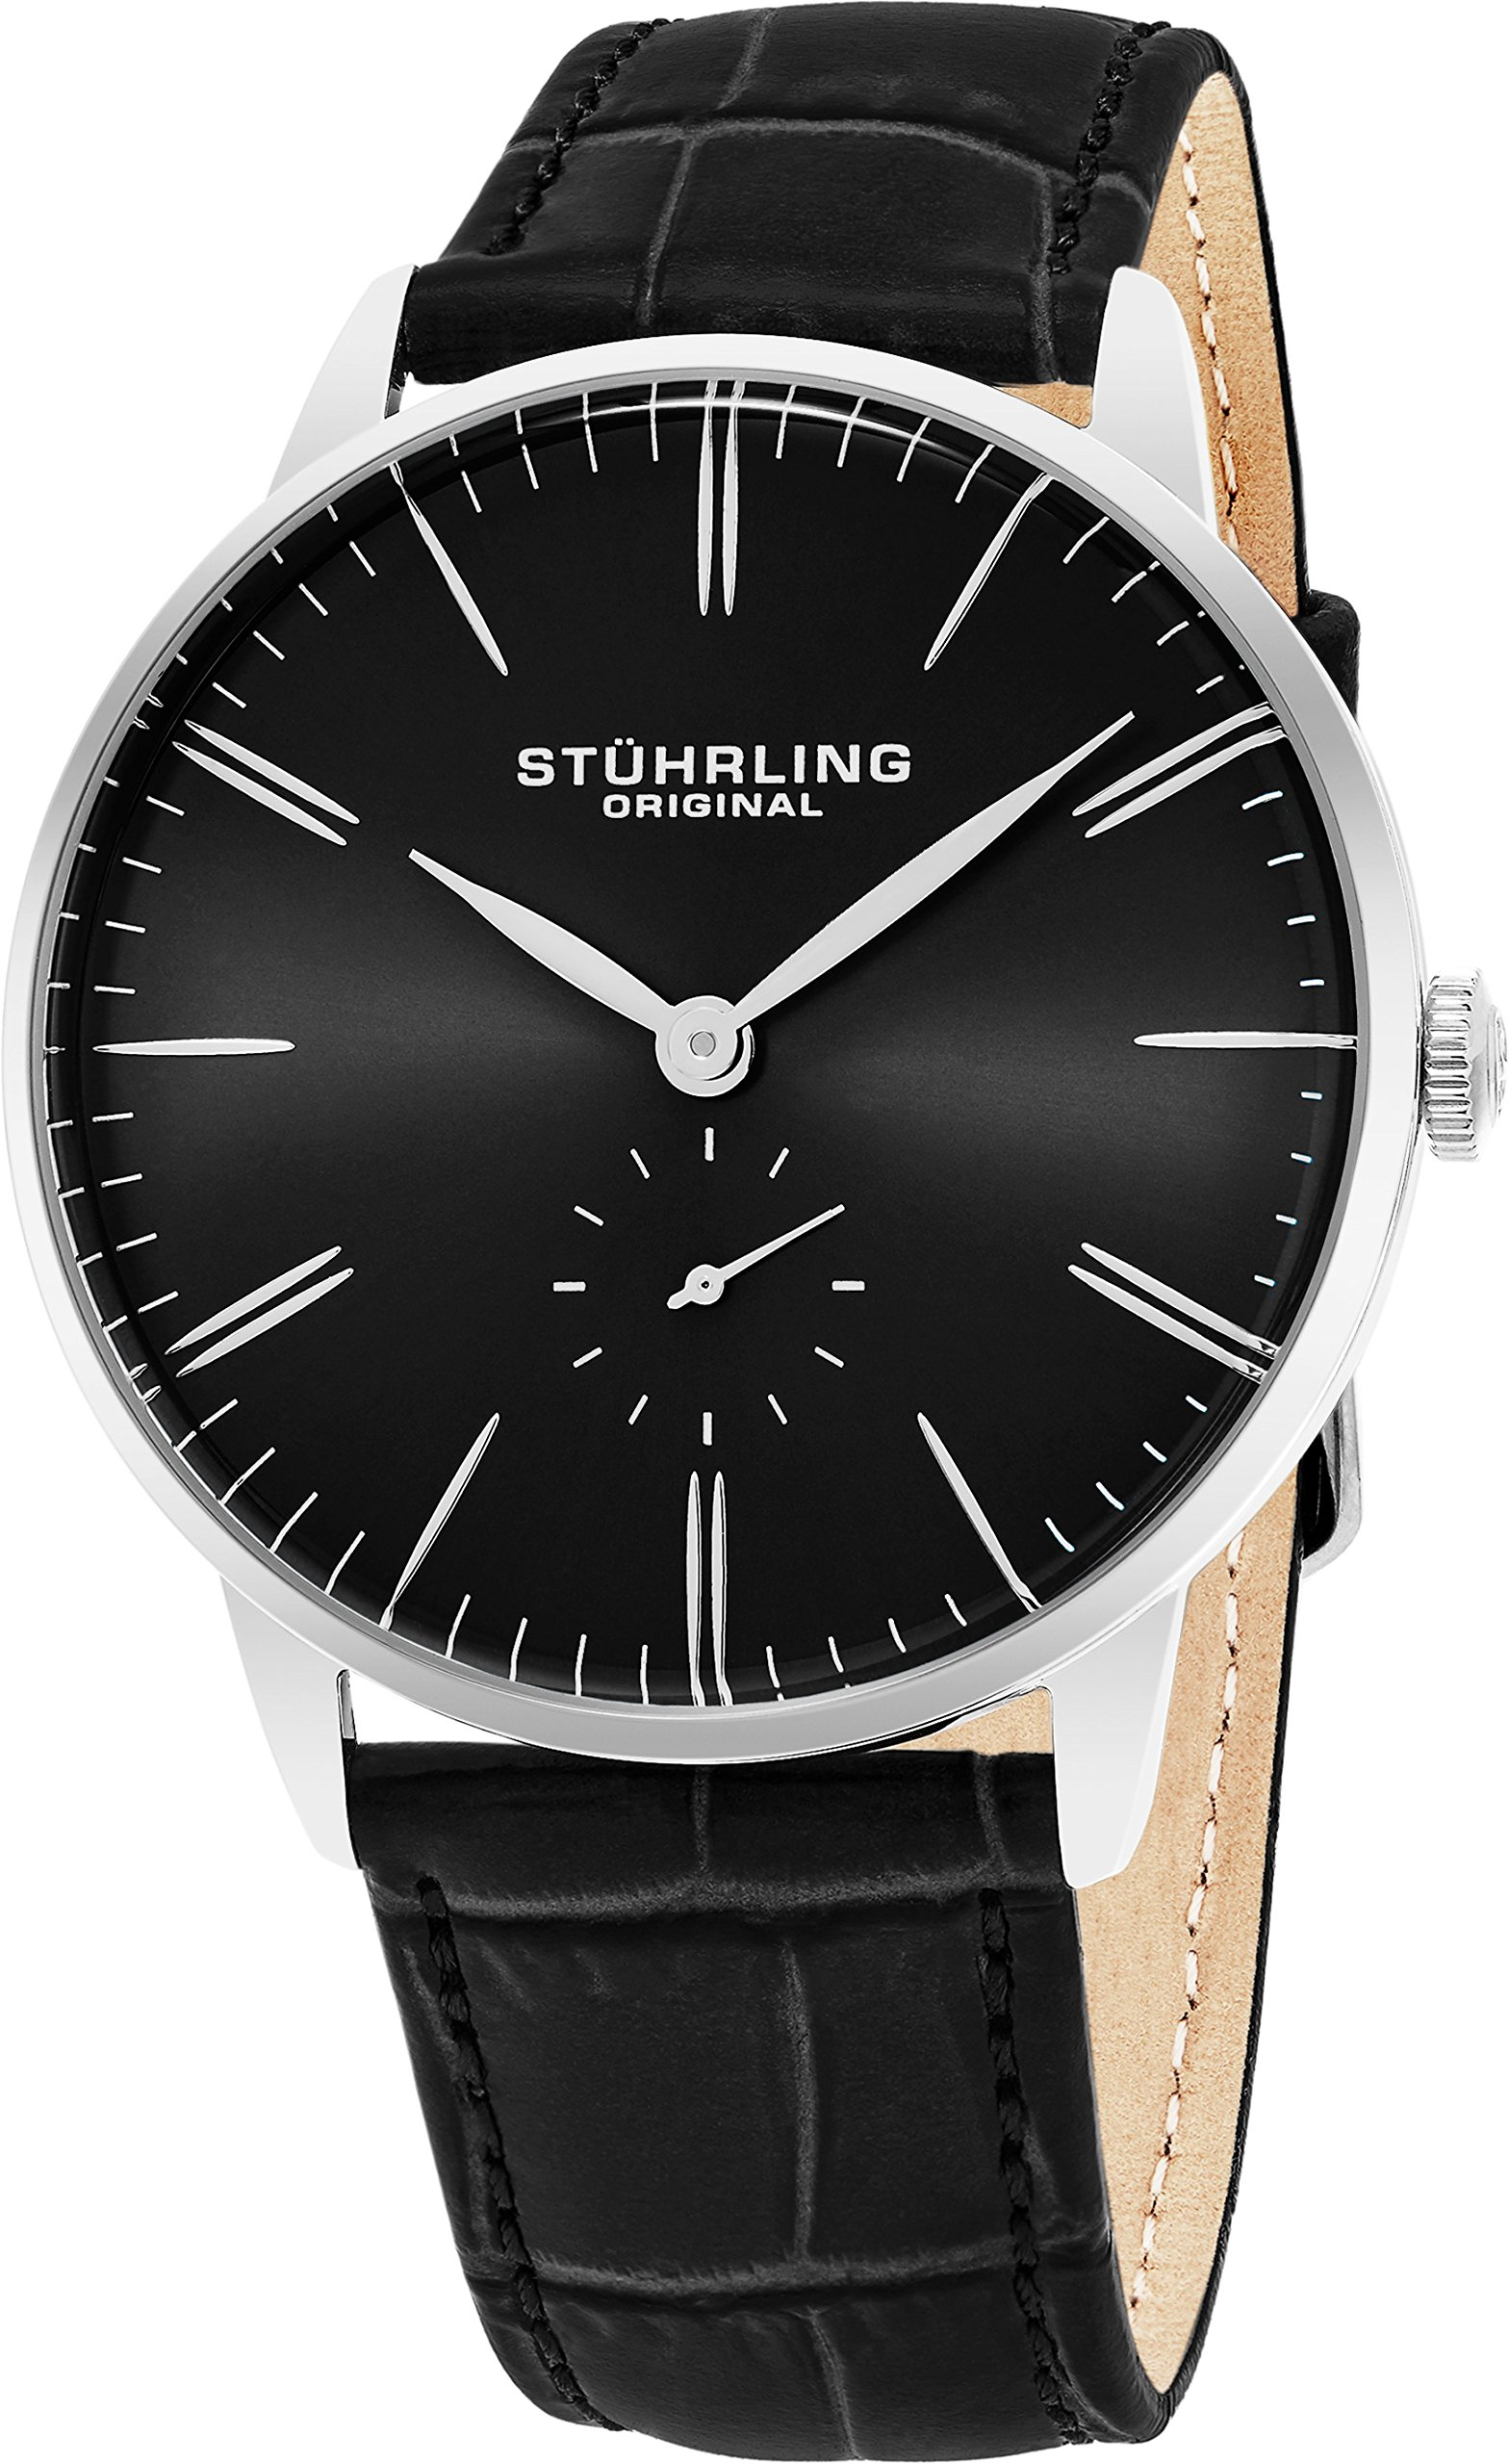 Stuhrling Original Mens Dress Watch, Leather Strap, Vintage Pie-Pan Dial with Seconds Sub-Dial, Stainless Steel Analog Japanese Quartz Watch, 849 Series (Black)